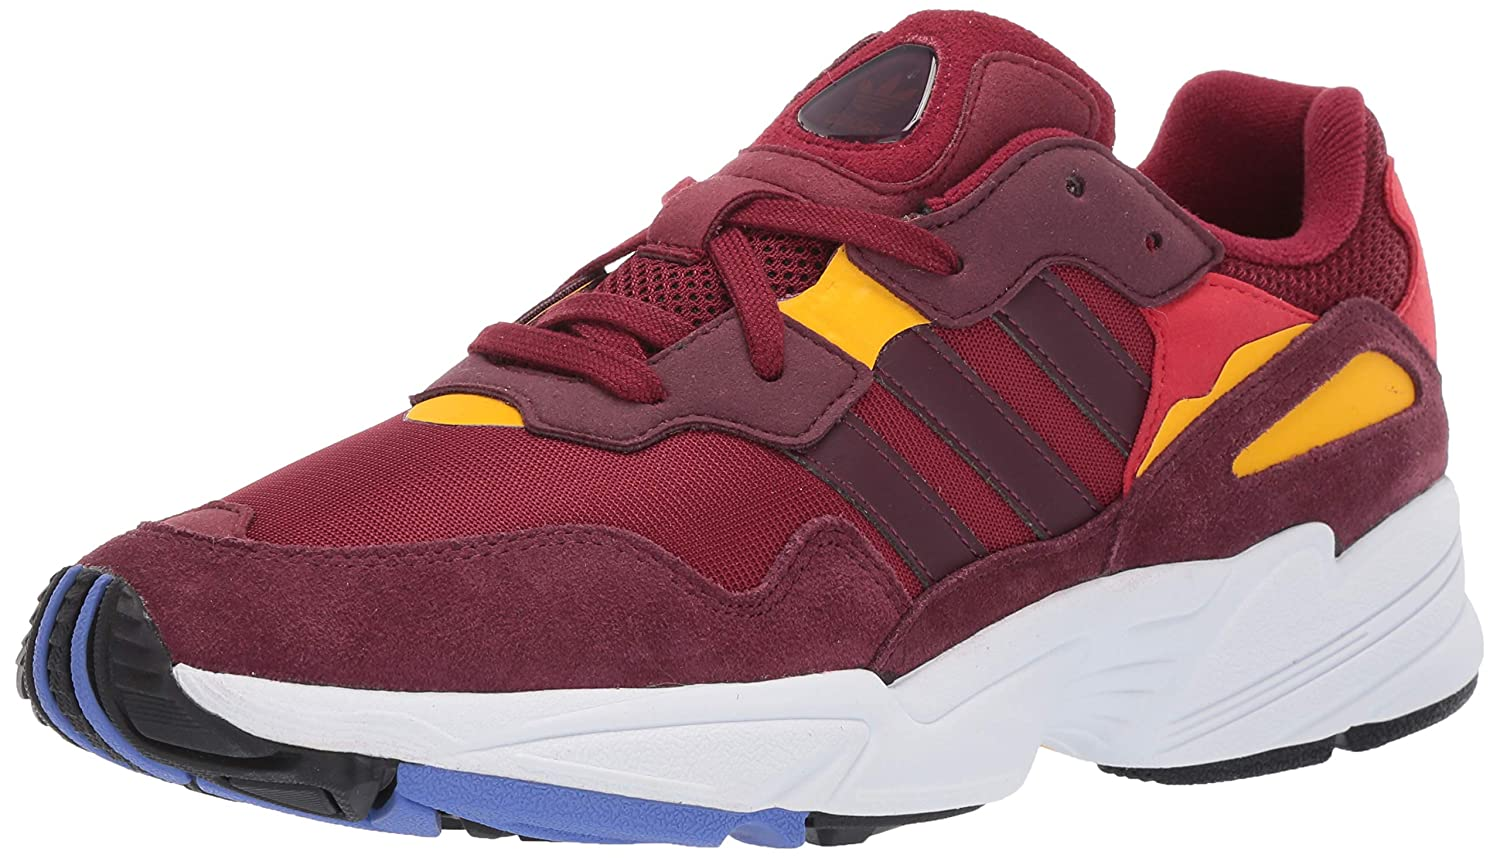 15bcfdaefe7 adidas Yung-96 Shoes Men's